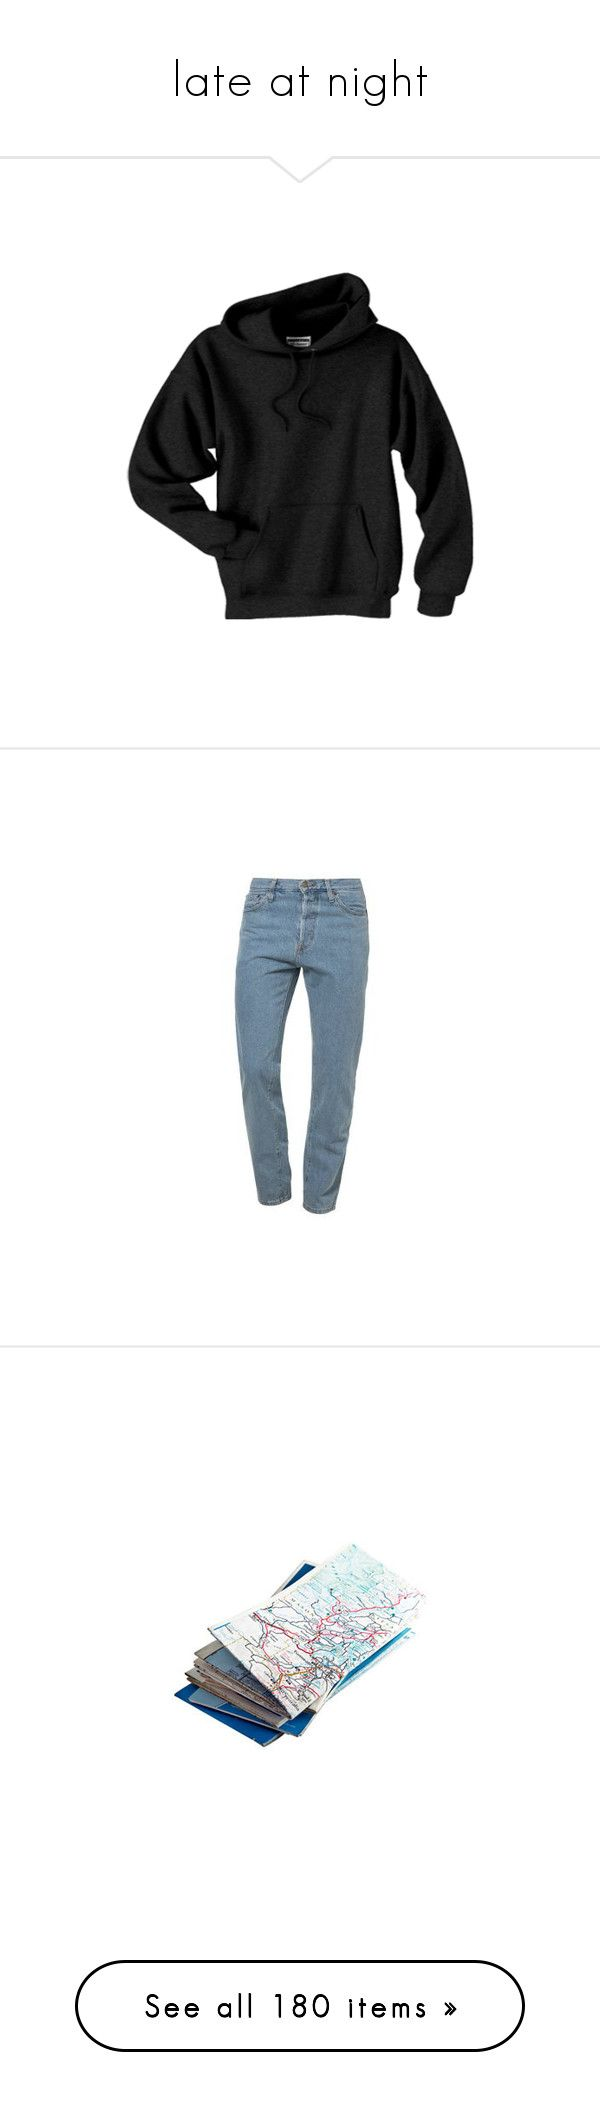 """""""late at night"""" by oisauce ❤ liked on Polyvore featuring tops, hoodies, sweatshirts, jackets, sweaters, sweatshirt hoodies, hooded sweatshirt, hoodies sweatshirts, pullover hoodies and pullover sweatshirt"""